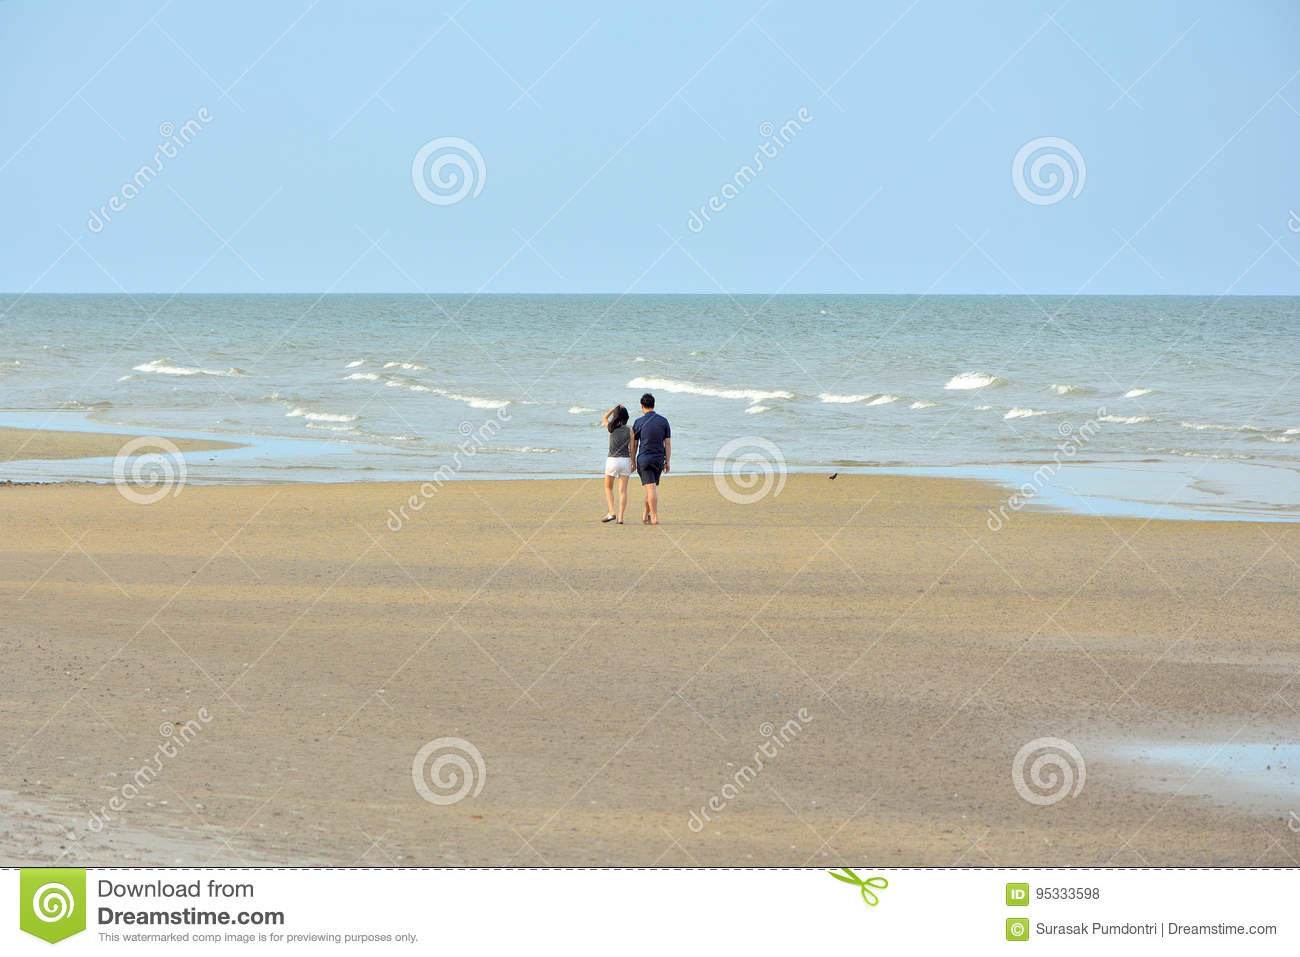 Male and female couples walking on a beach